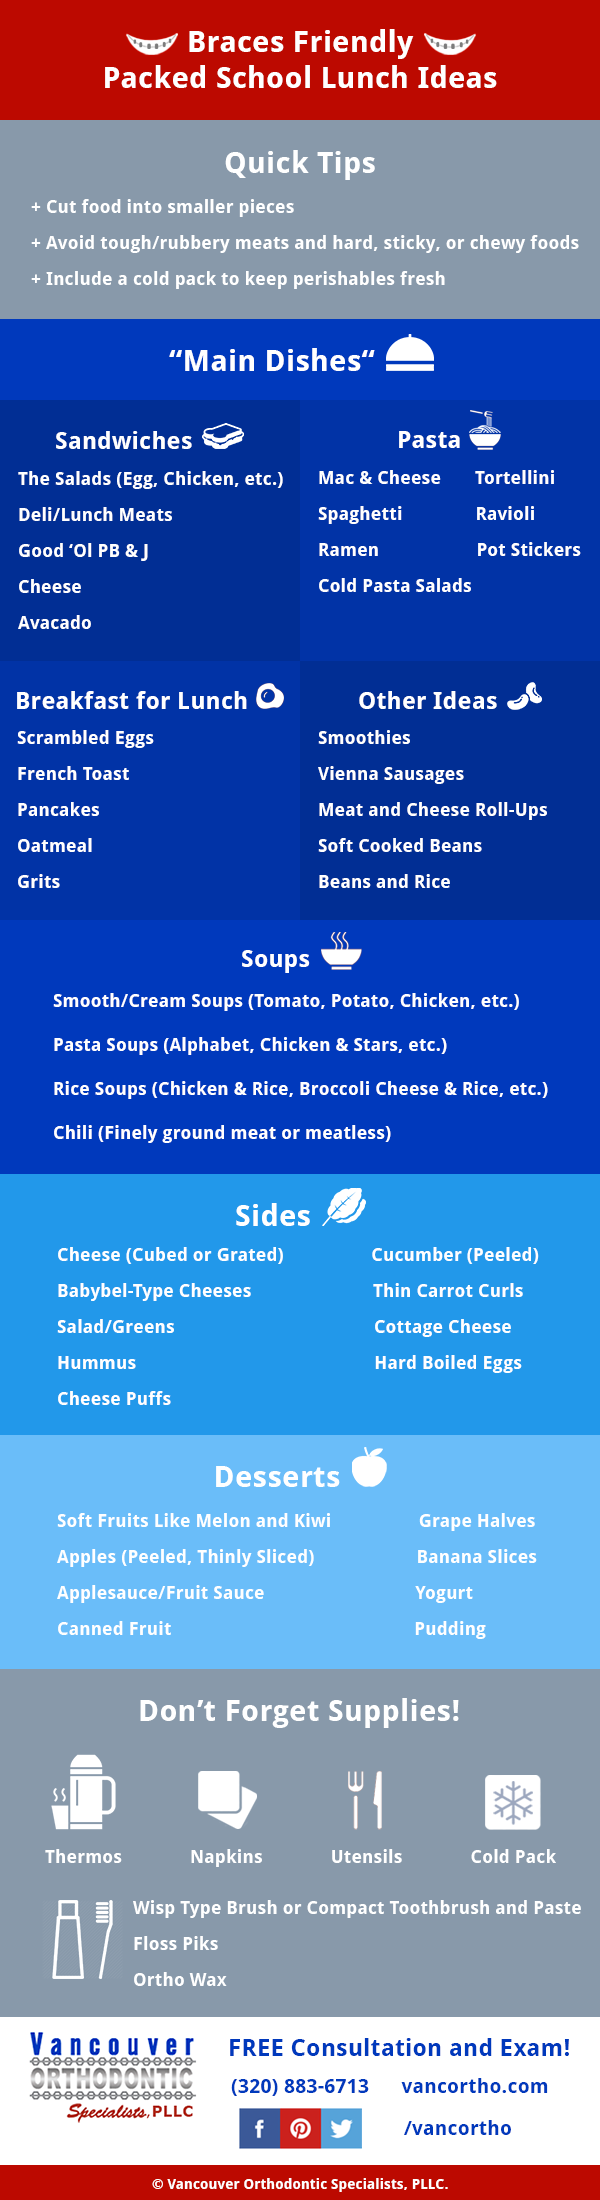 braces friendly packed school lunch ideas infographic by Vancouver Orthodontic Specialists PLLC